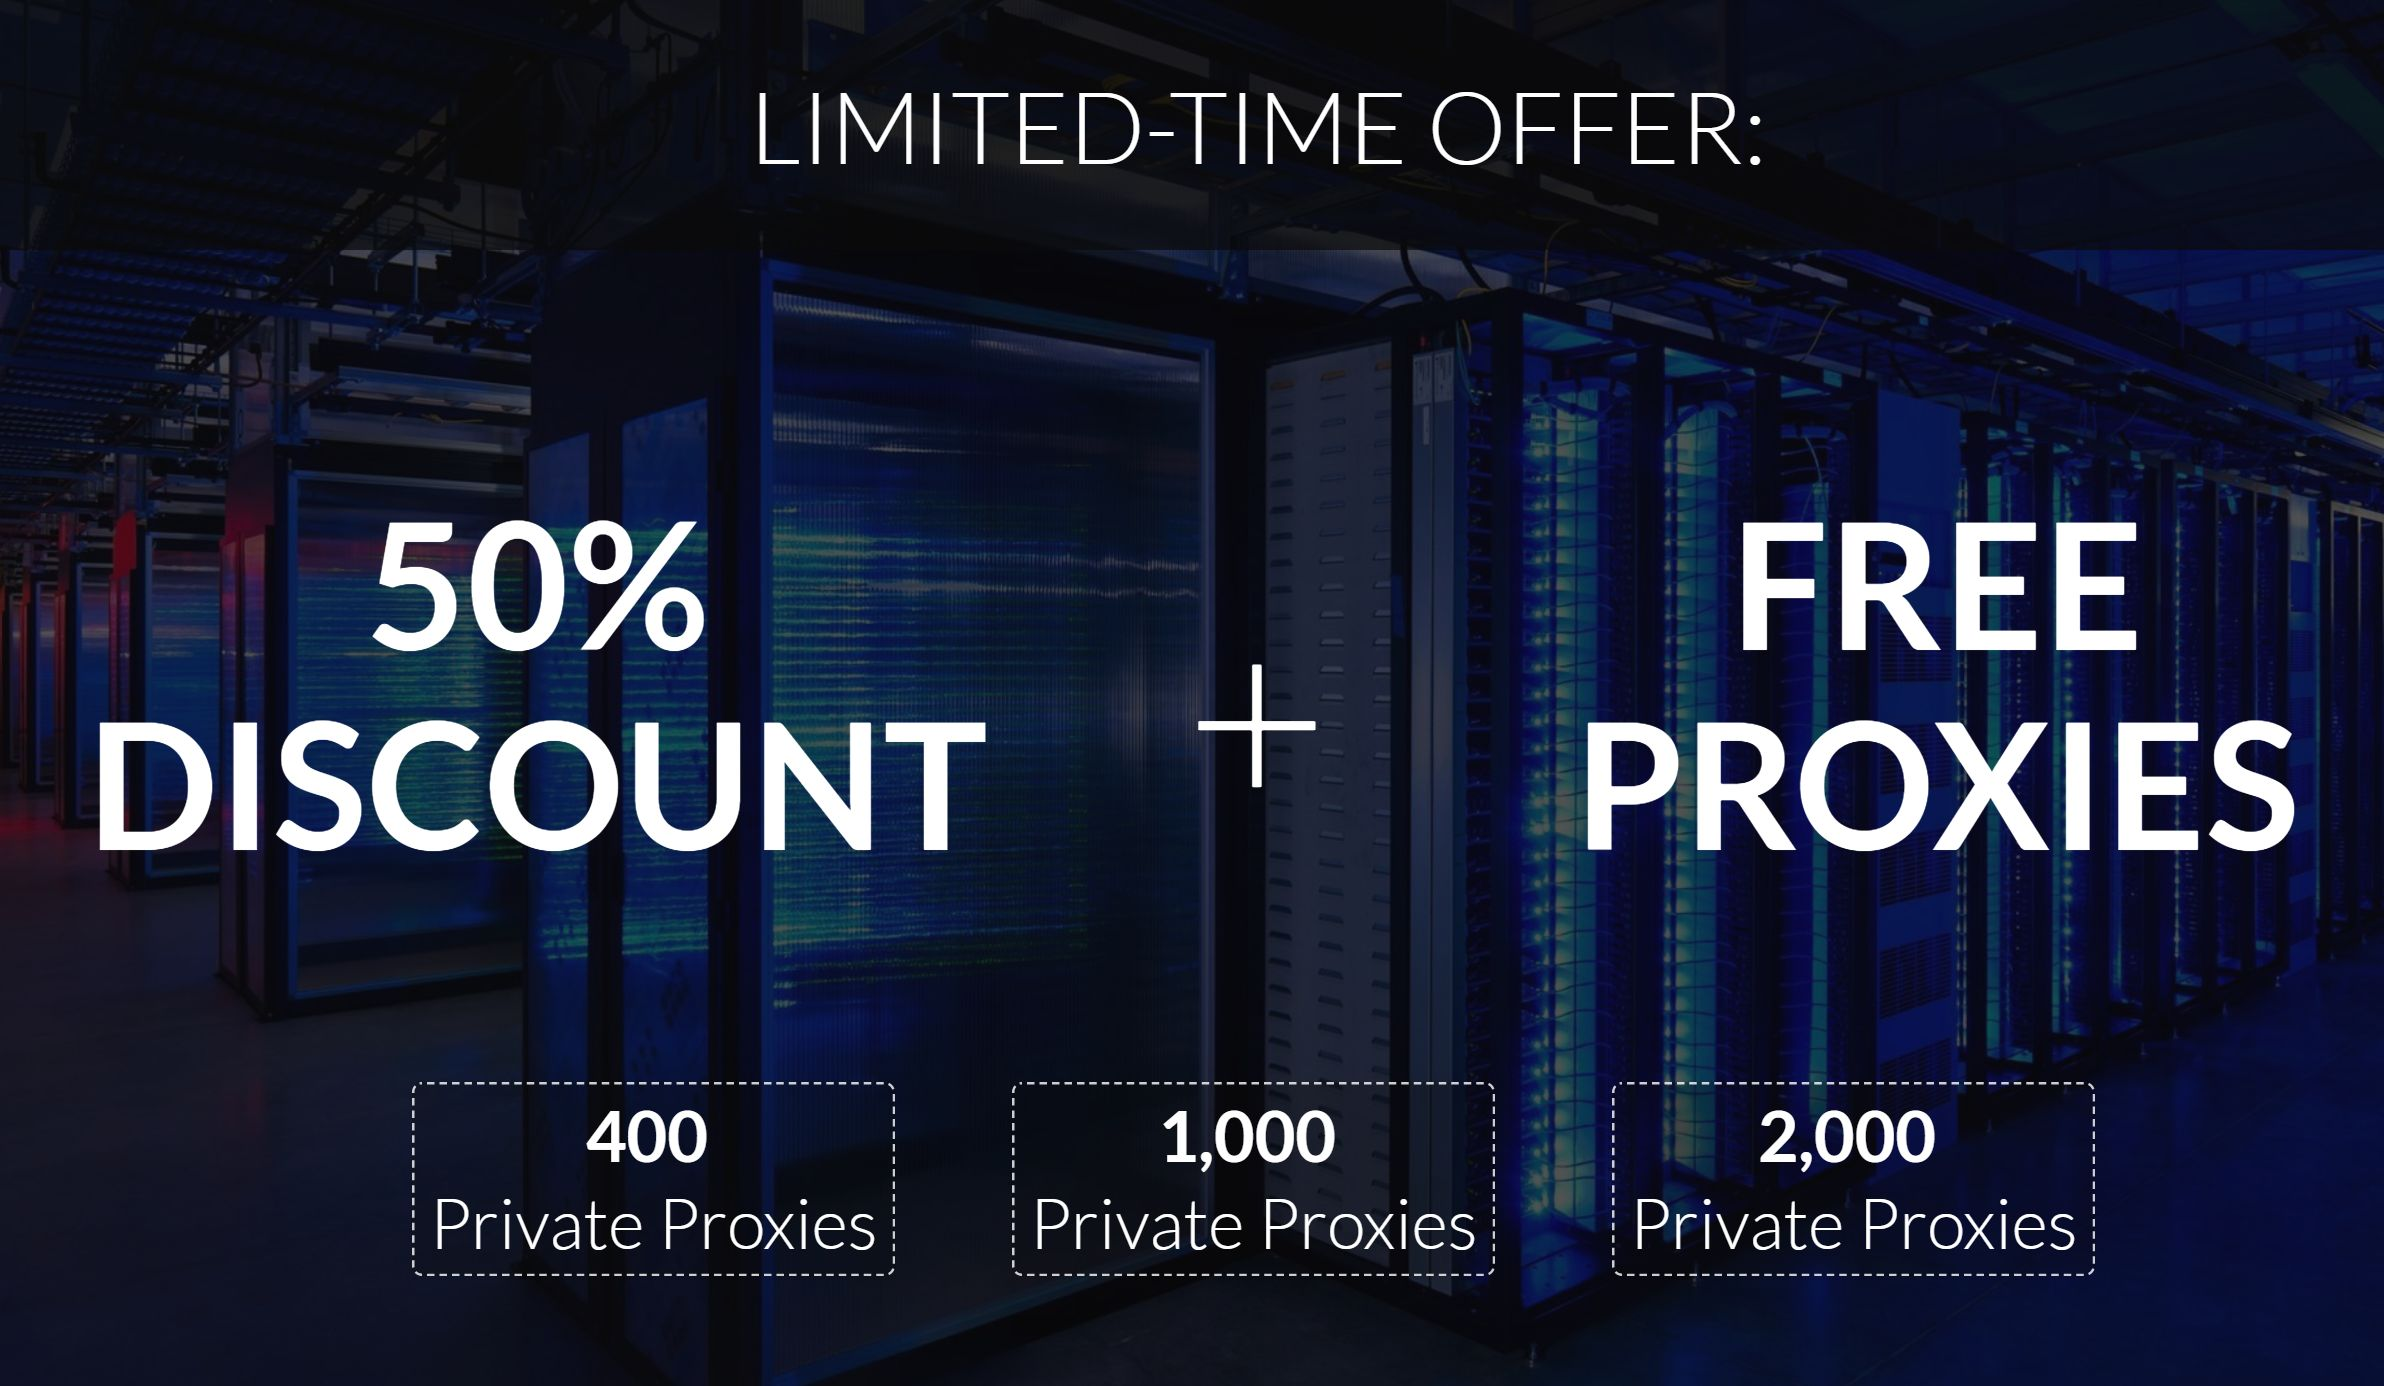 Cheapest USA Elite Private Proxies - Buy Now with 50